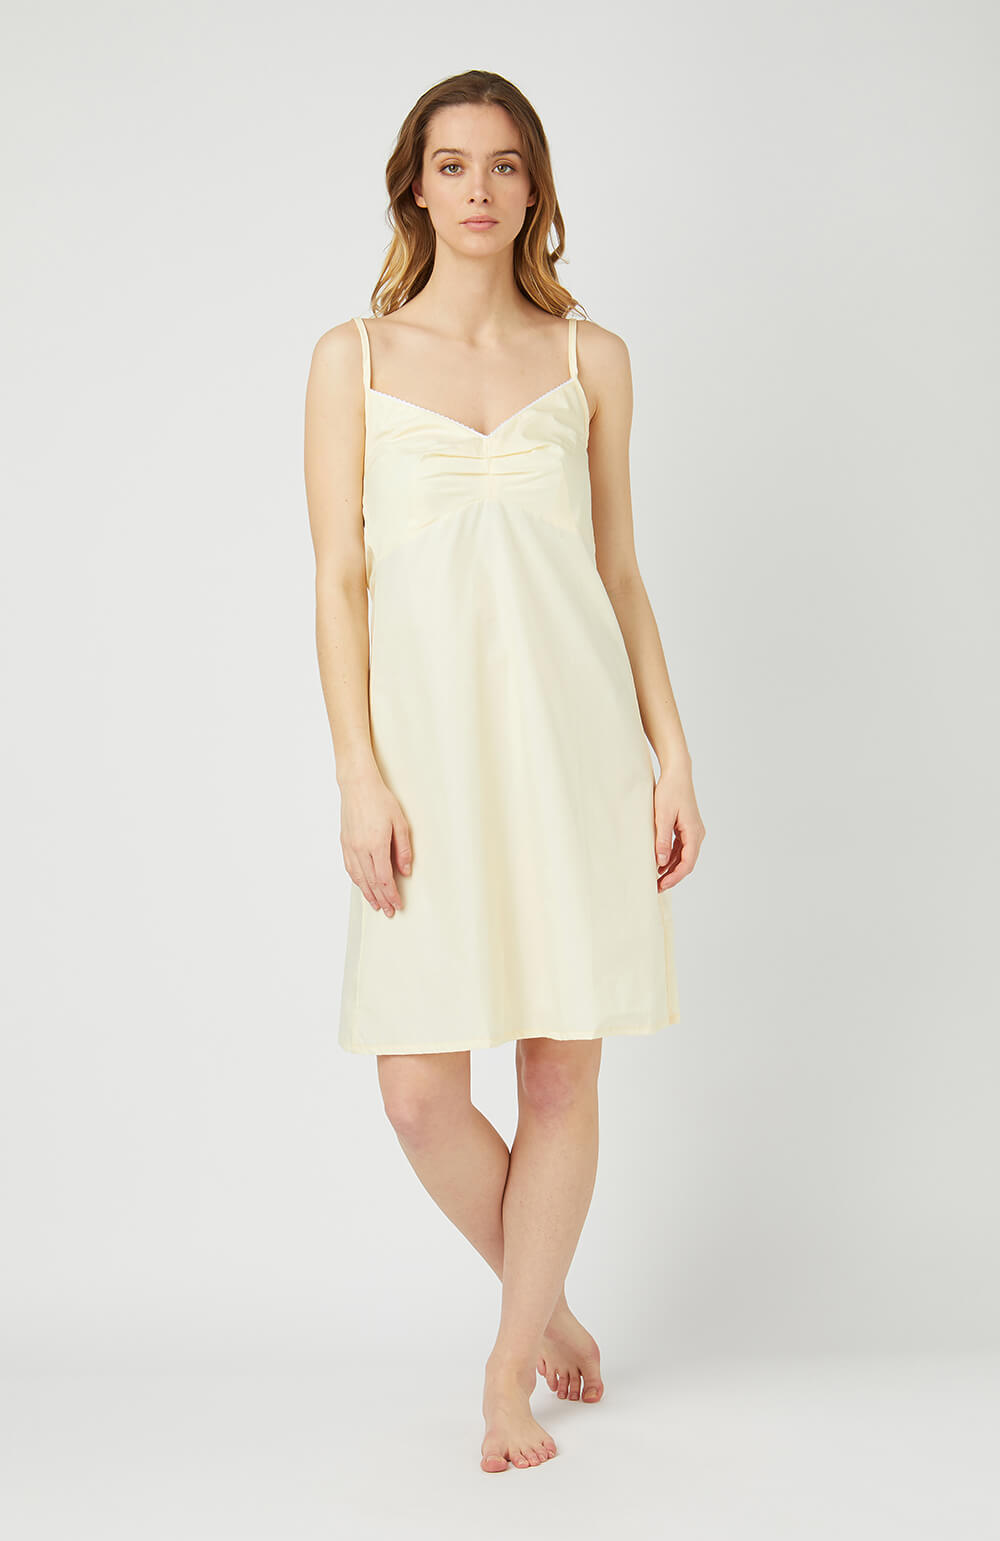 Strappy Nightdress (clfd) - Buttermilk